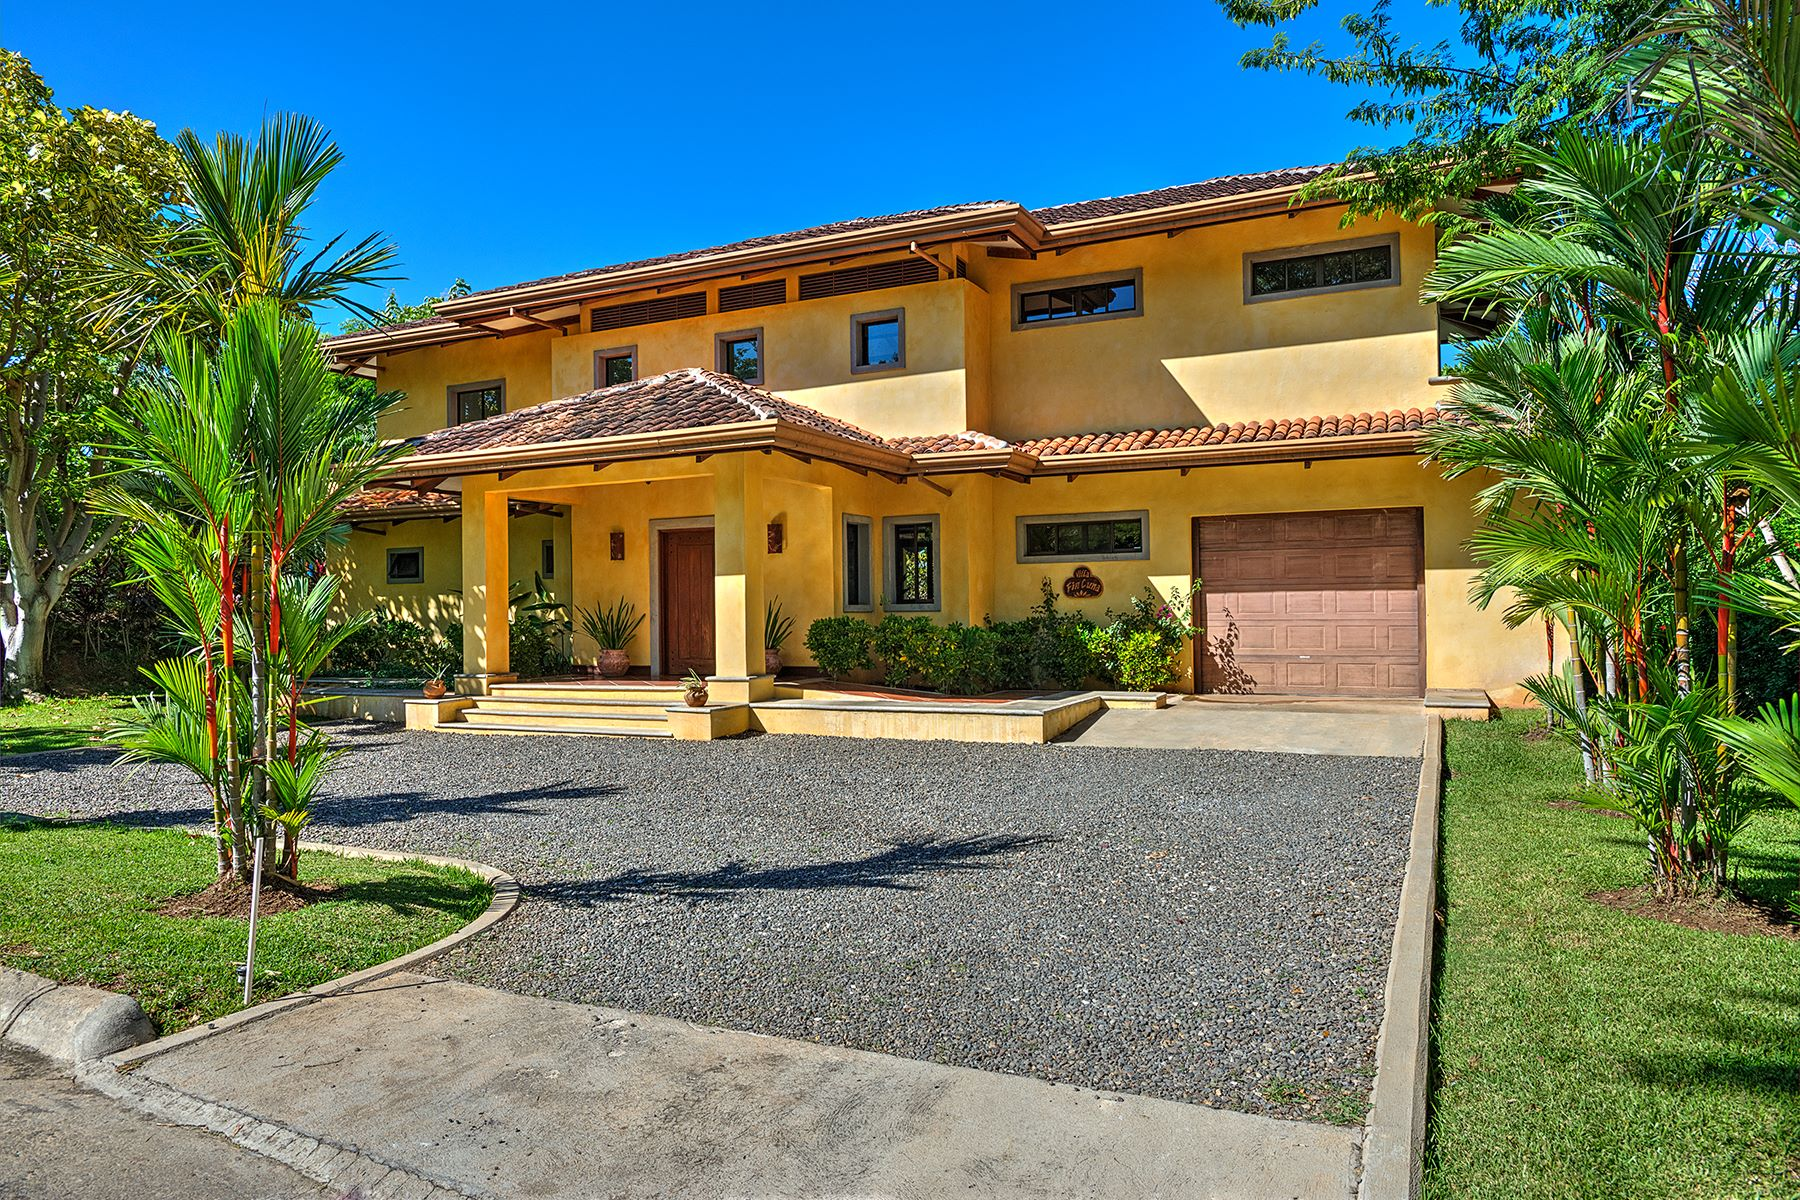 Single Family Home for Sale at Villa Fin Luna PRICE REDUCED Reserva Conchal, Costa Rica